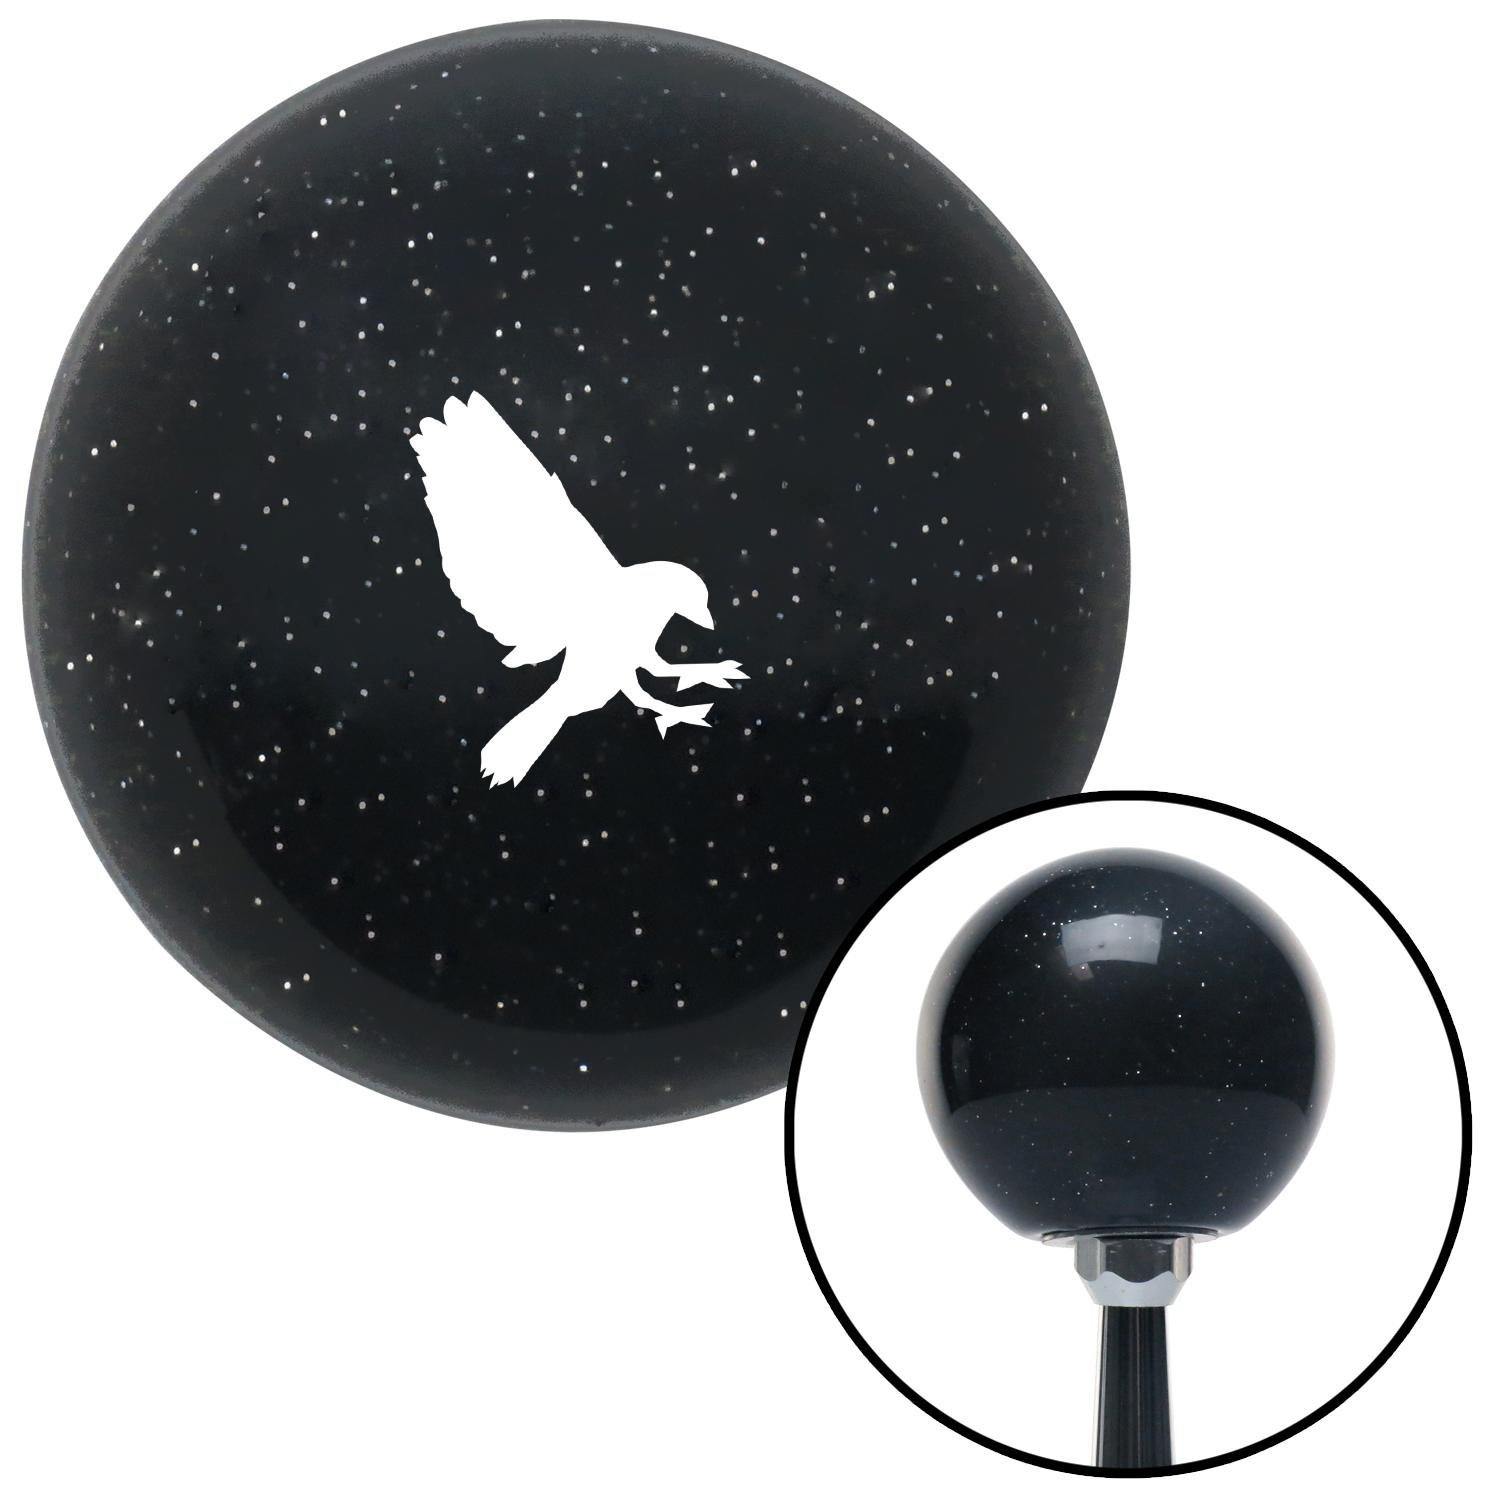 American Shifter 278455 Shift Knob White Crow Black Metal Flake with M16 x 1.5 Insert